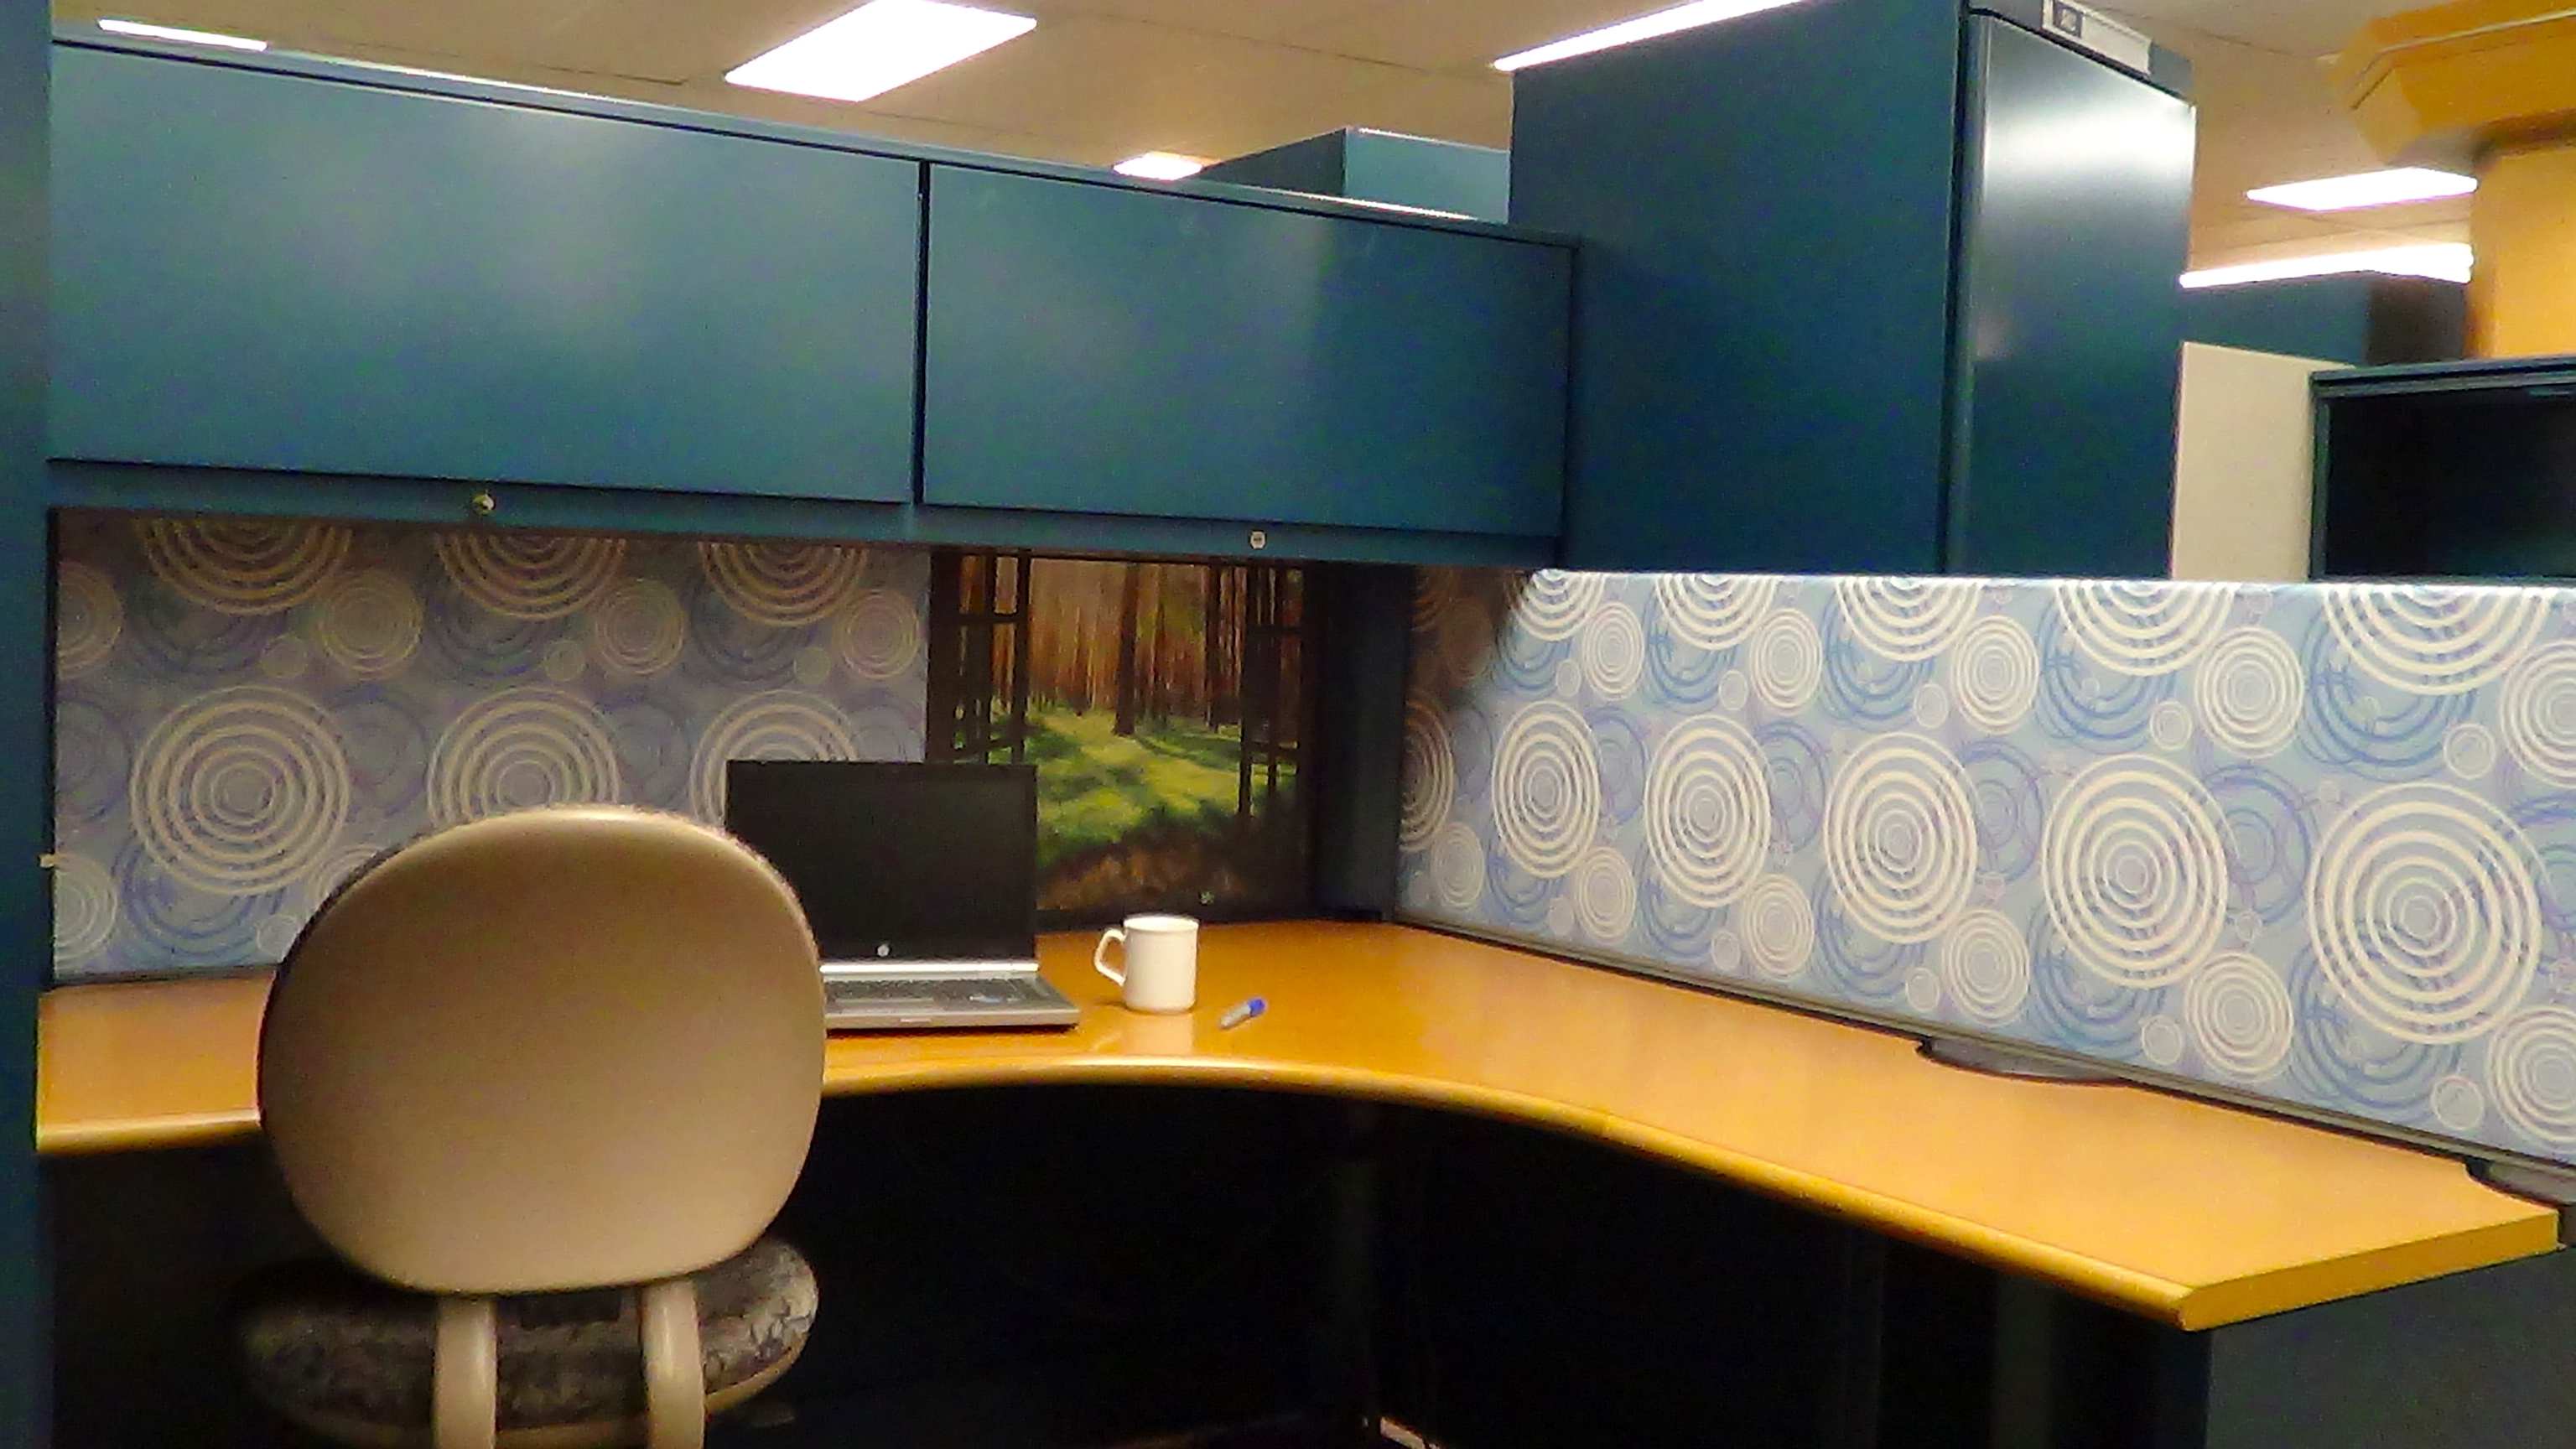 Wallpaper Cubicle Panels Joy Studio Design Gallery 3072x1728